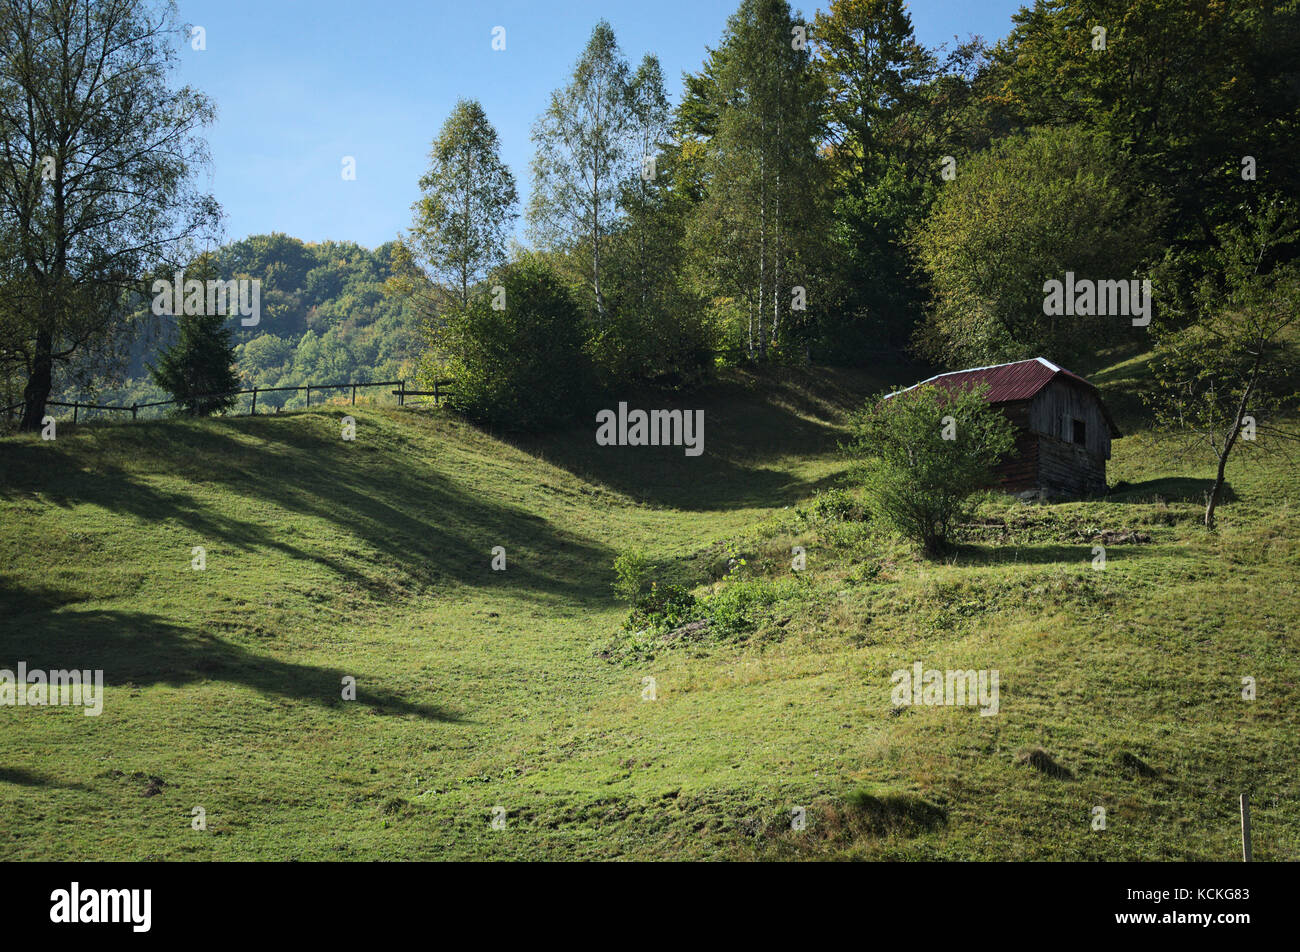 Landscape, cottage in the hills, green wavy meadow with long shadows from the surrounding trees, rural image. - Stock Image